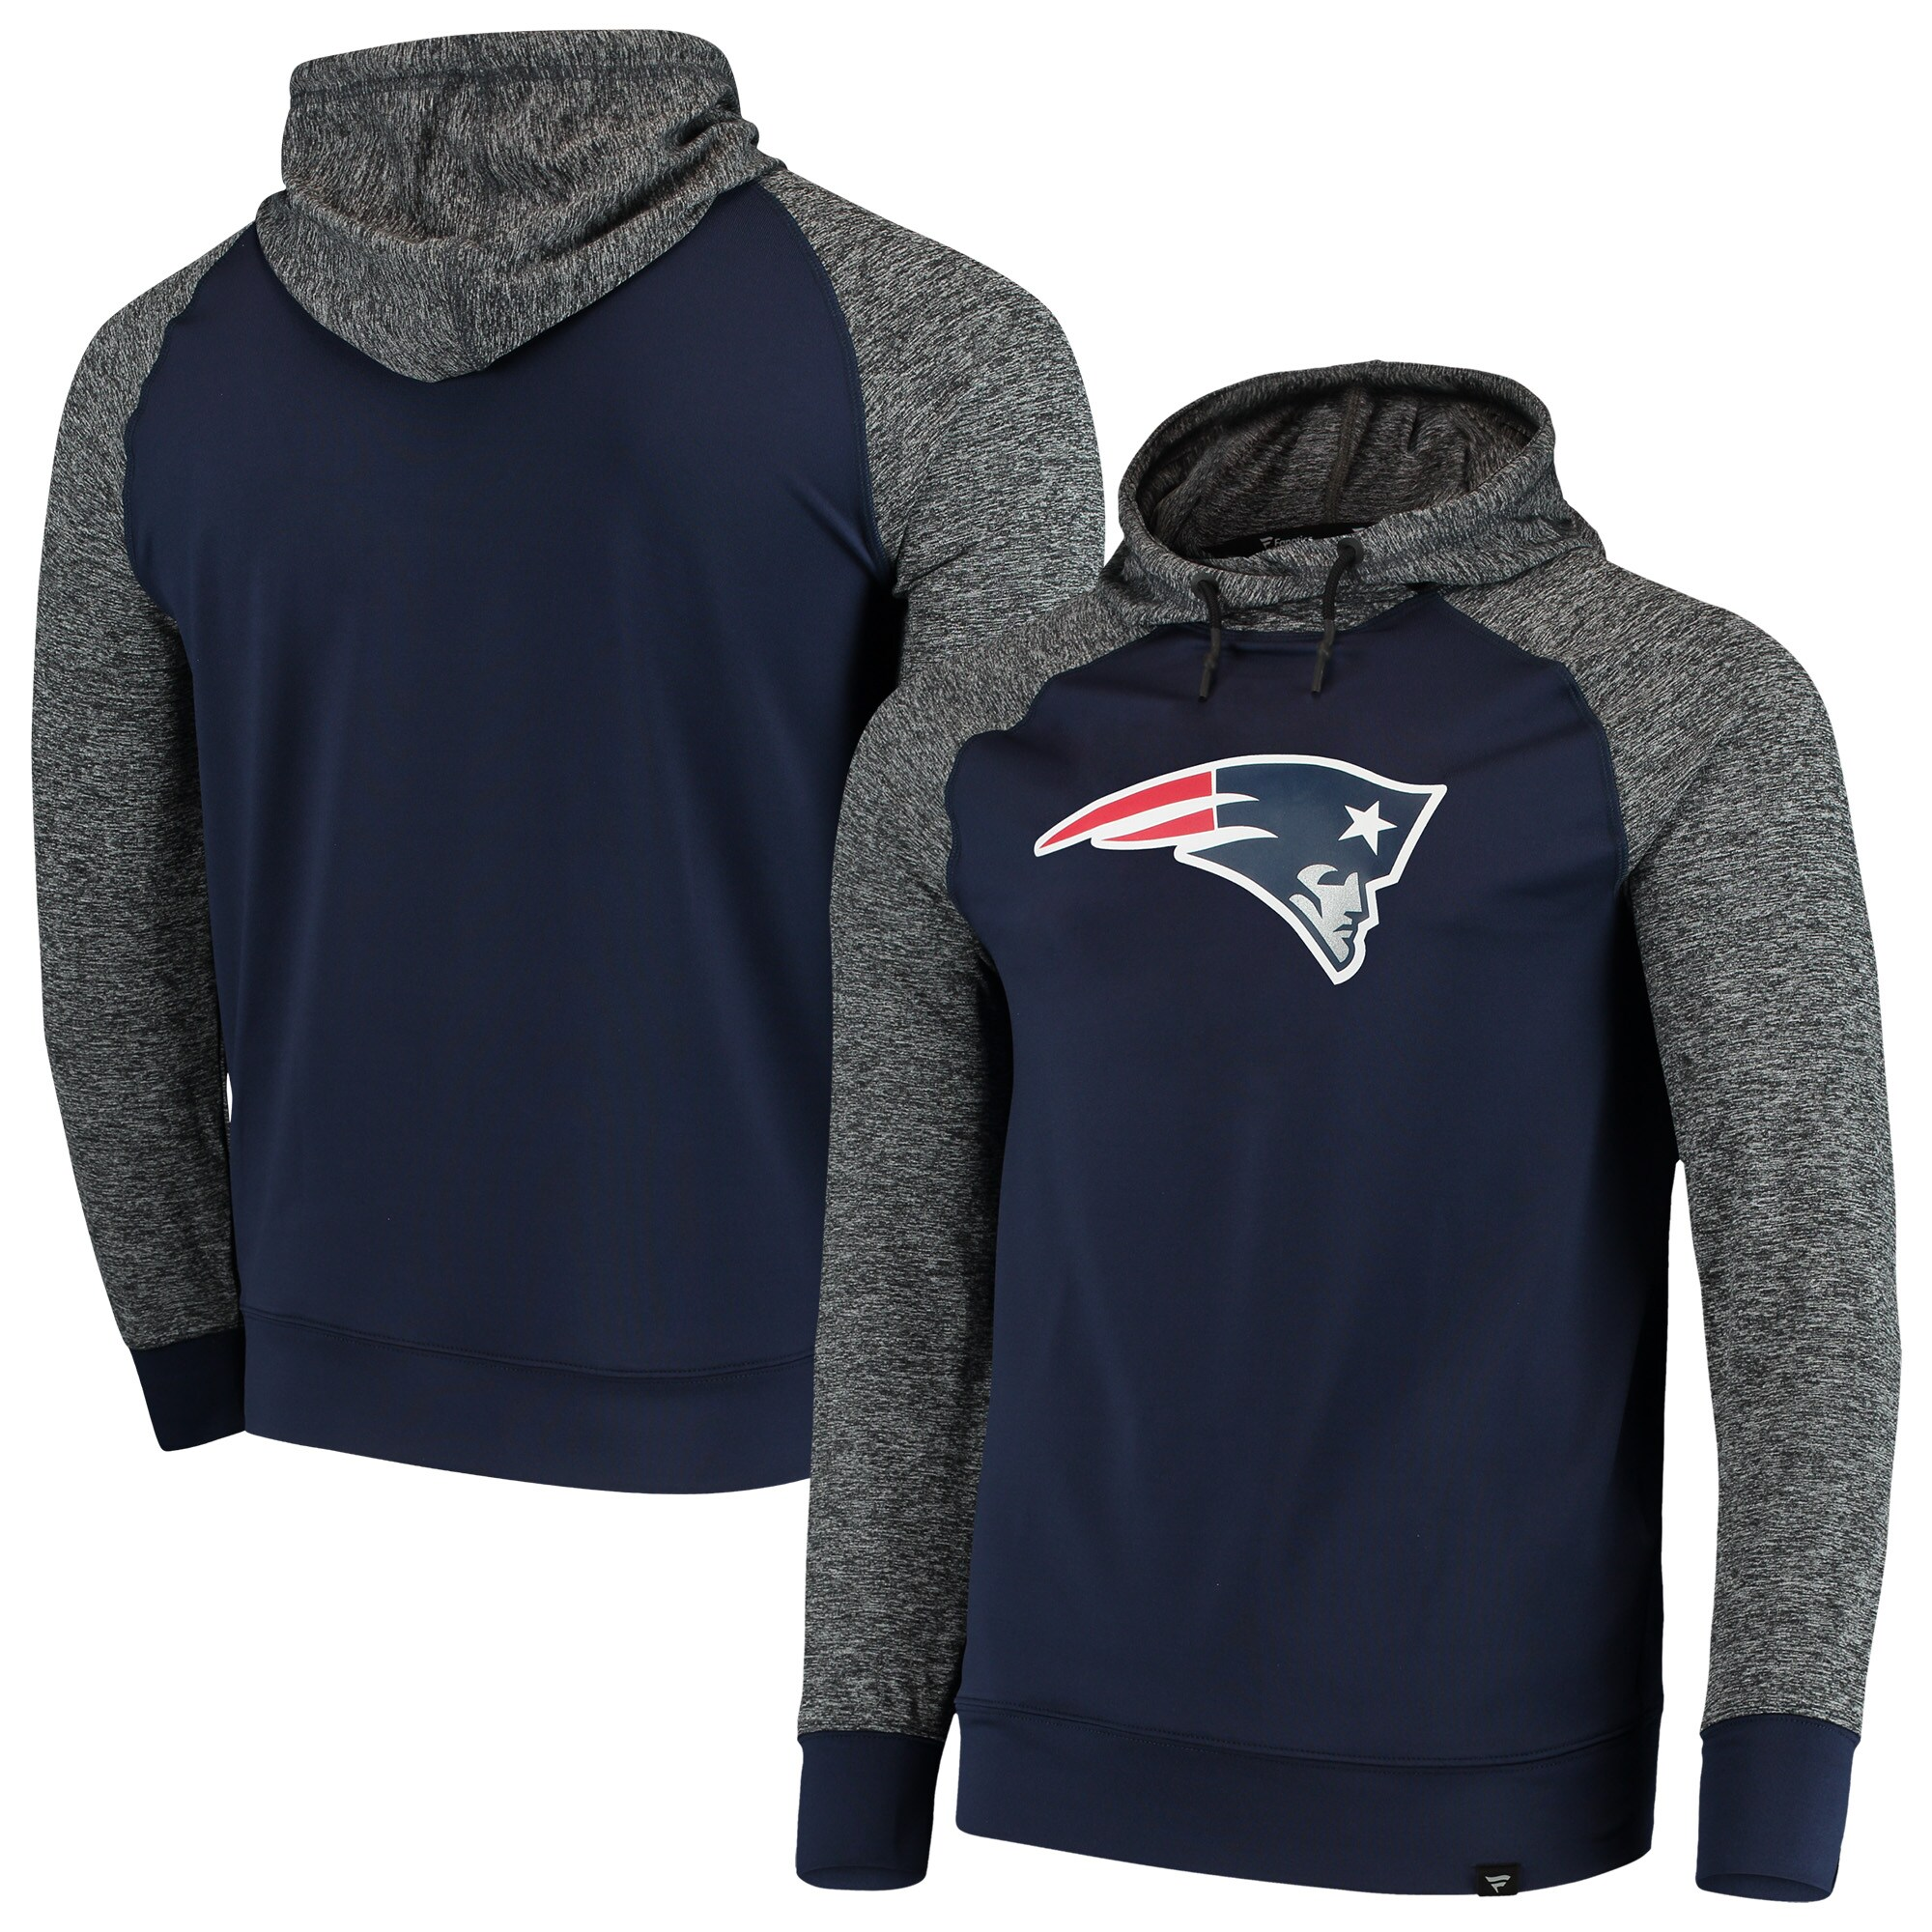 New England Patriots NFL Pro Line by Fanatics Branded Static Pullover Hoodie - Heathered Black/Navy